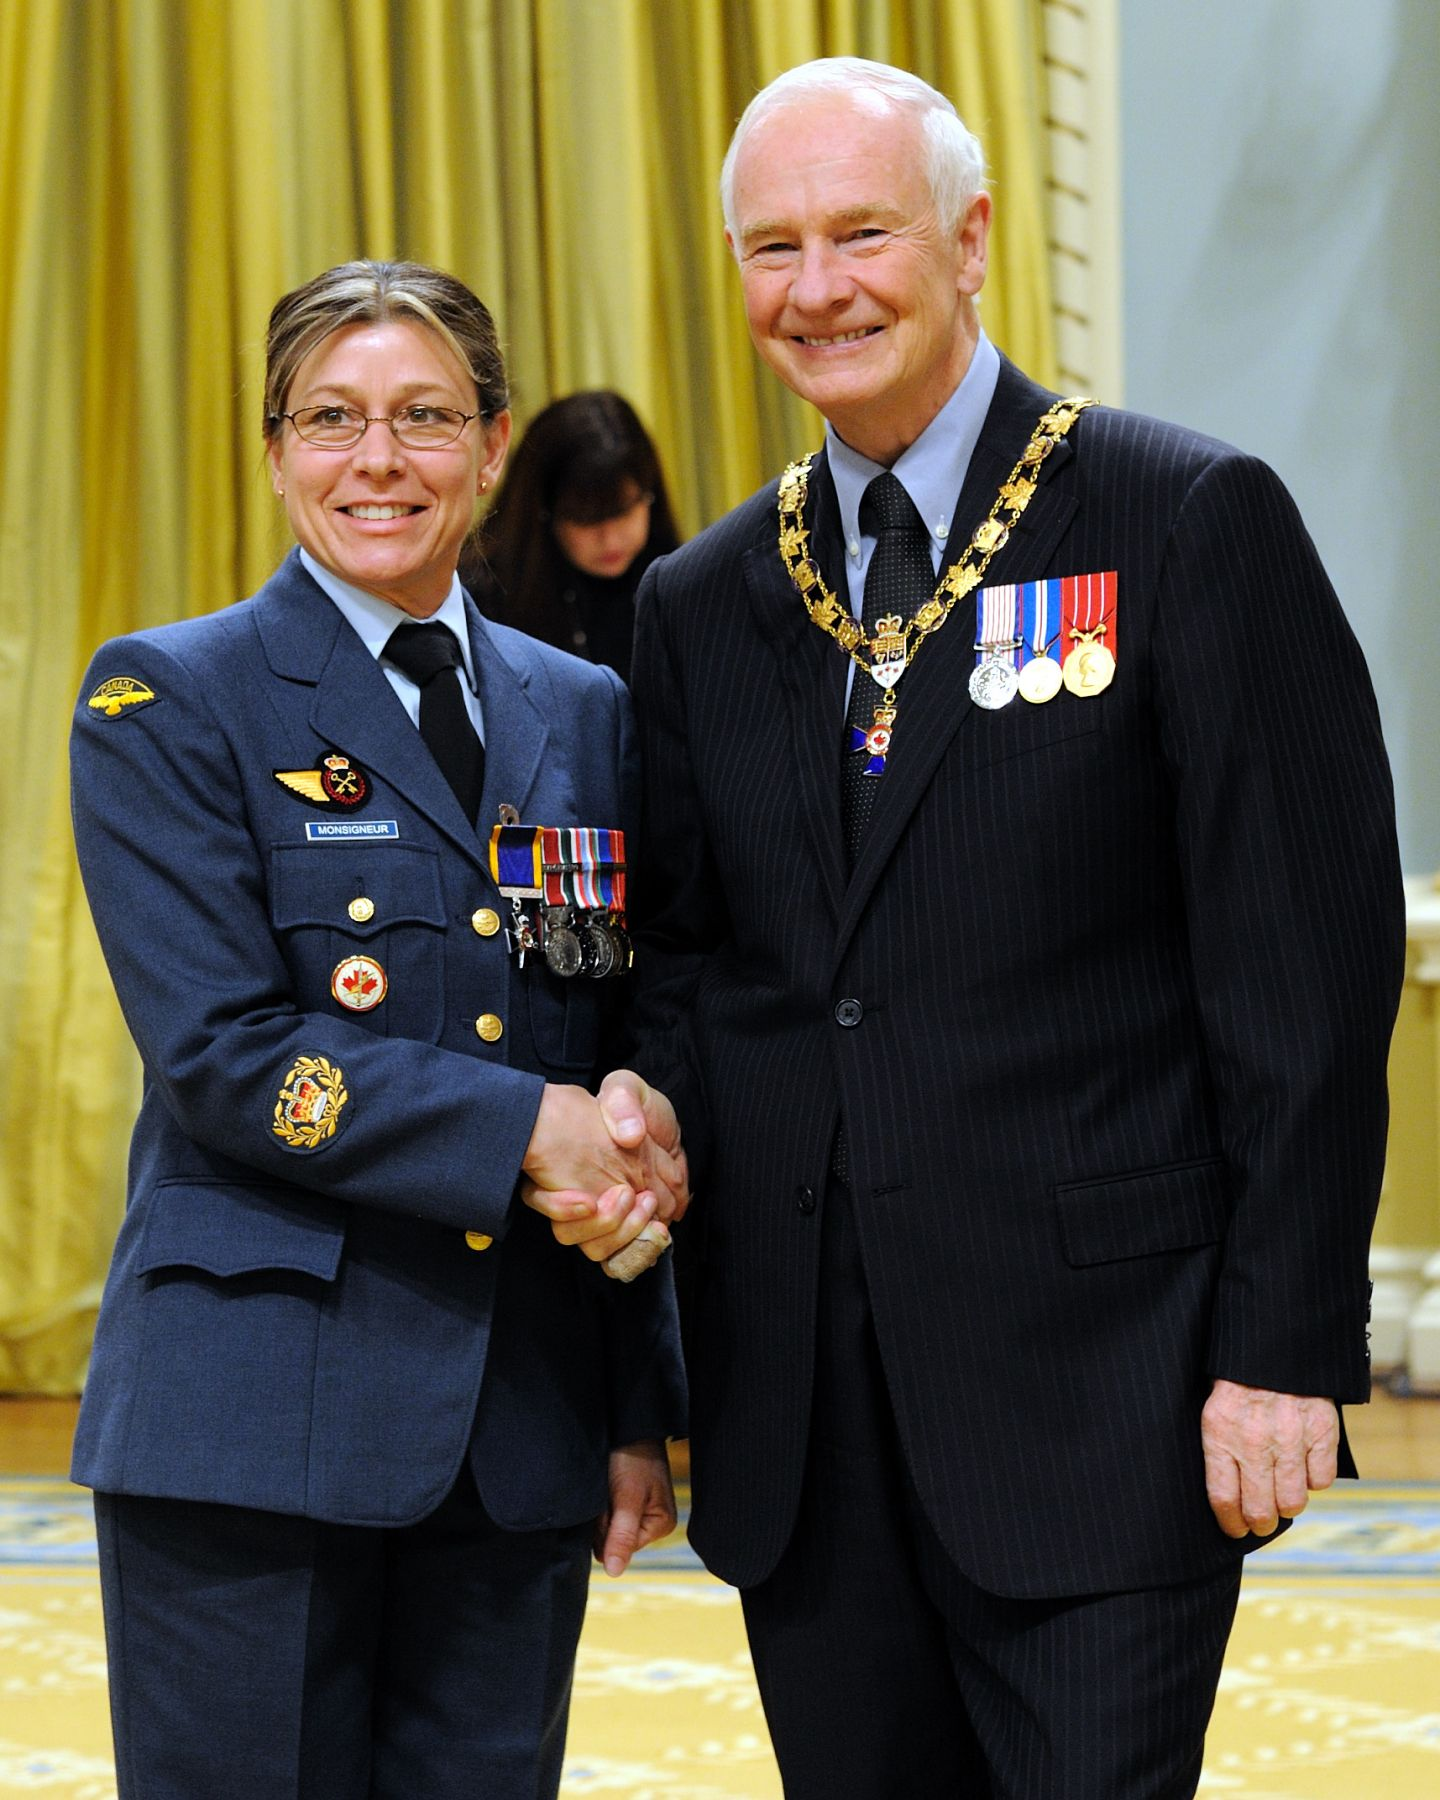 His Excellency presented the Order of Military Merit at the Member level (M.M.M.) to Master Warrant Officer Carol Monsigneur, M.M.M., C.D., Canadian Forces Leadership and Recruit School, Richelain, Quebec.